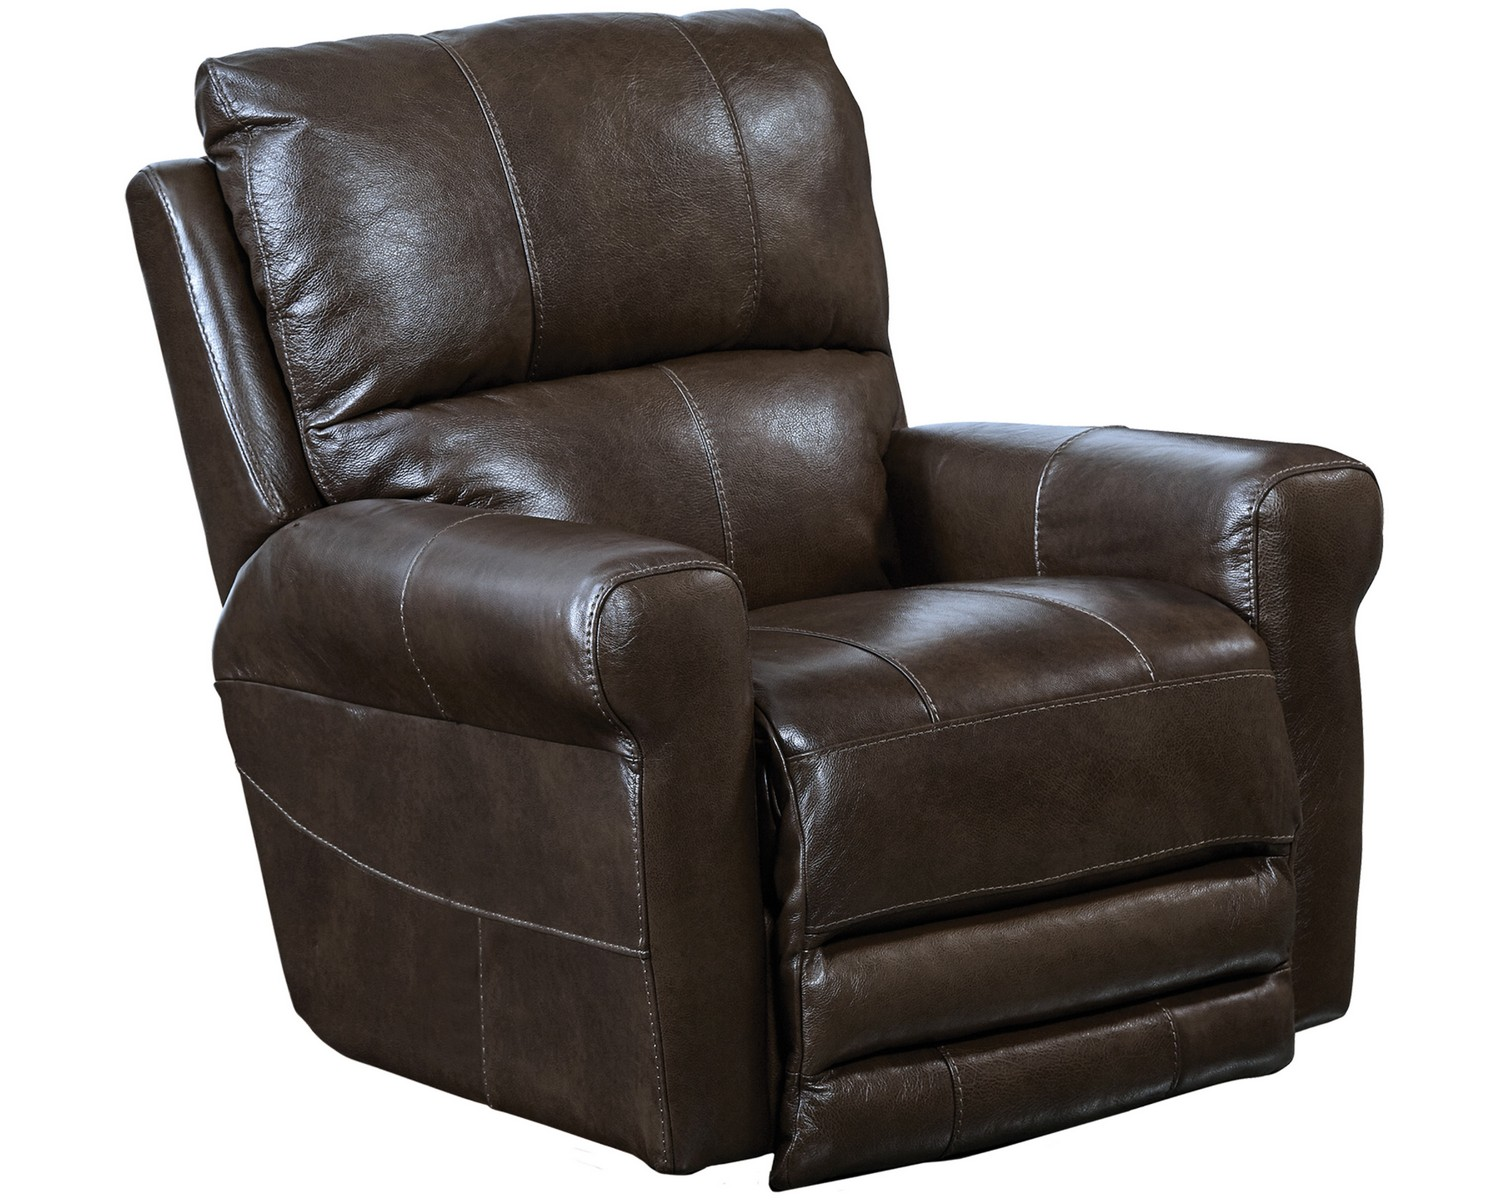 CatNapper Hoffner Top Grain Leather Touch Swivel Glider Recliner - Chocolate